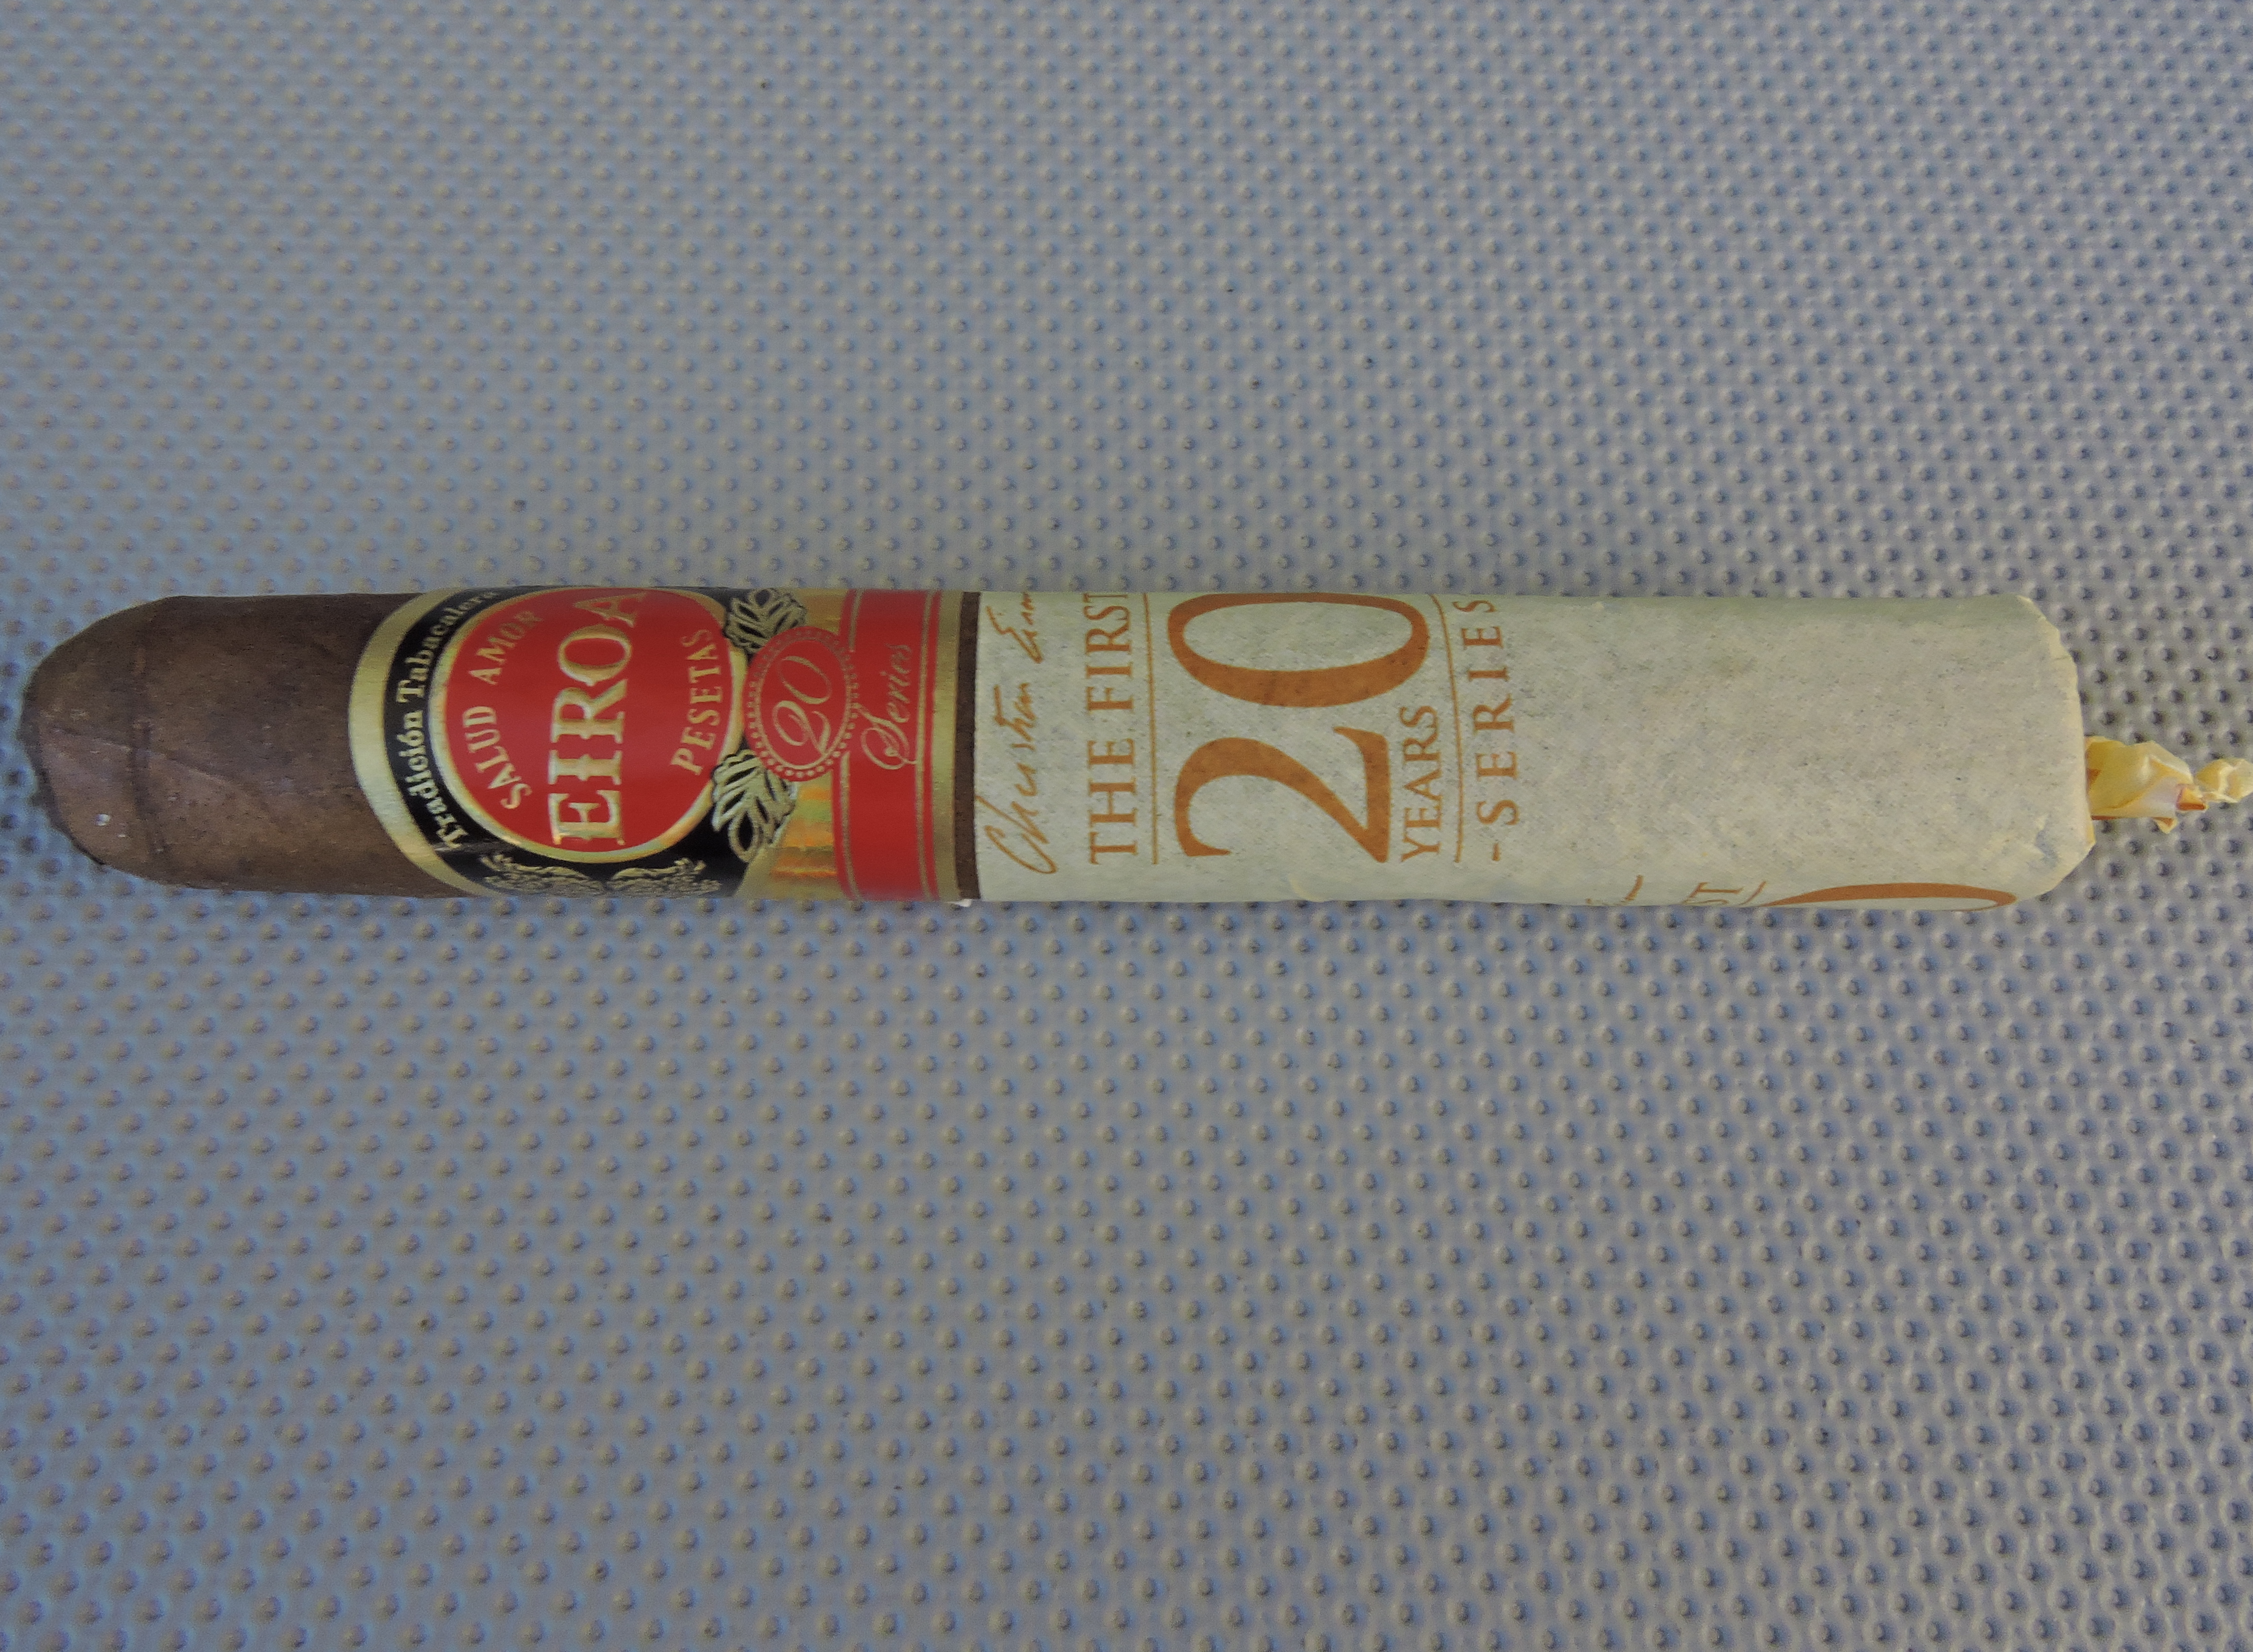 Agile Cigar Review: Eiroa The First 20 Years 60 x 6